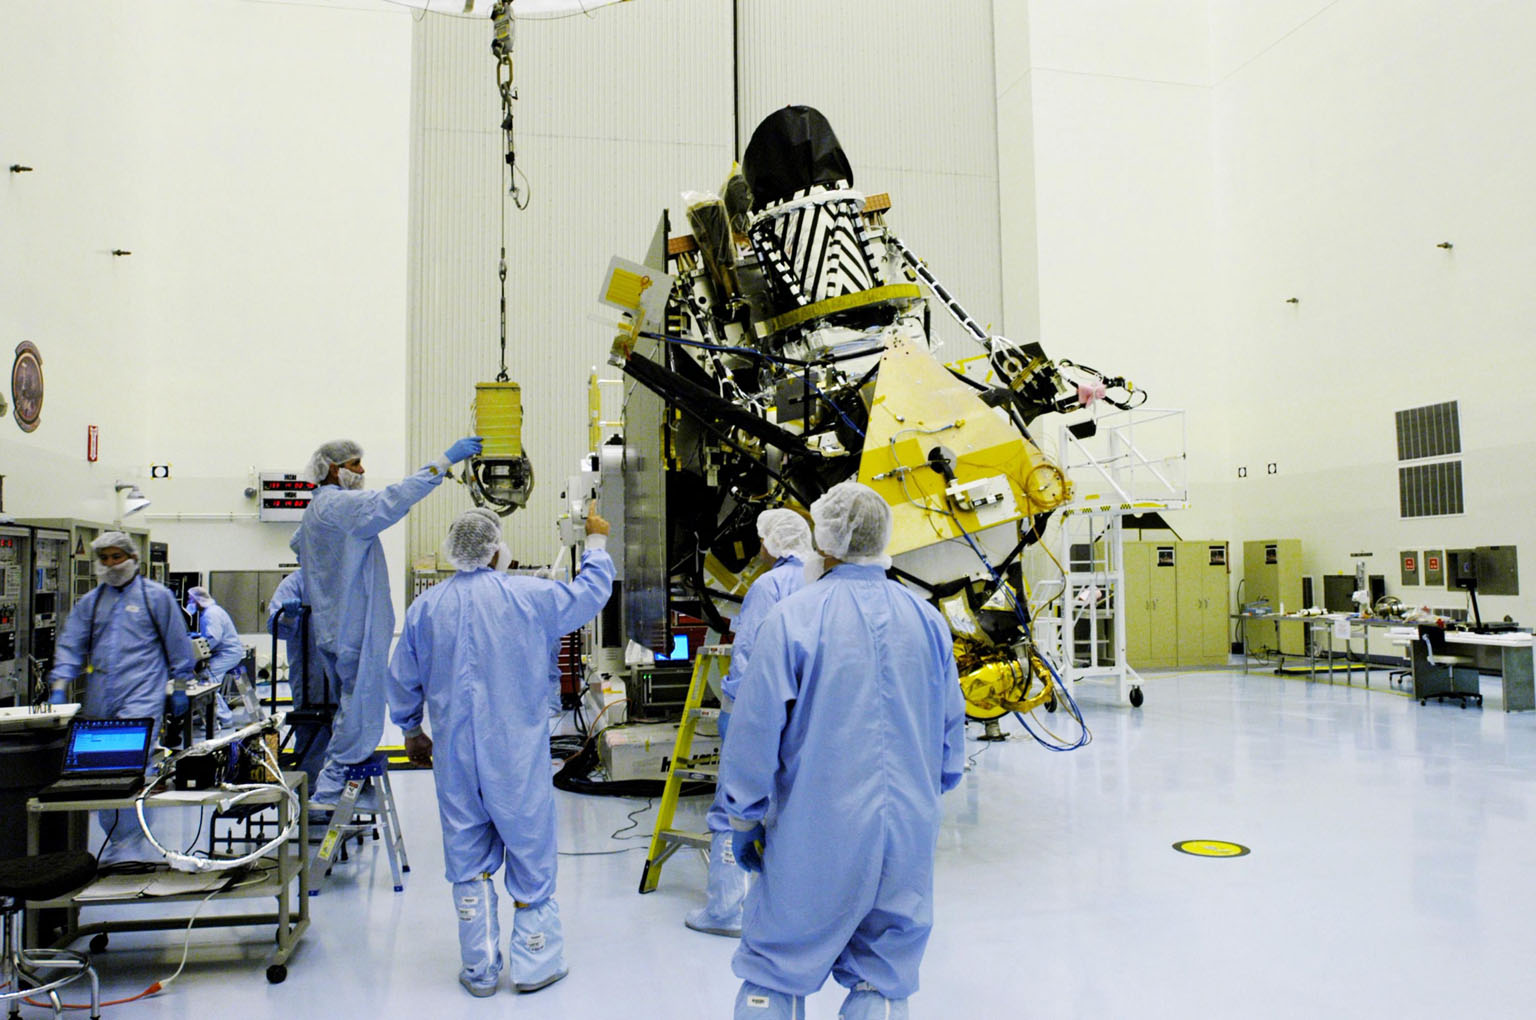 KENNEDY SPACE CENTER, FLA. - In the Payload Hazardous Servicing Facility at NASA?s Kennedy Space Center, engineers move the gimbal closer to the Mars Reconnaissance Orbiter (MRO) in the background. The gimbal will be installed on the MRO solar panel. A gimbal is an appliance that allows an object to remain horizontal even as its support tips. In the PHSF, the spacecraft will undergo multiple mechanical assembly operations and electrical tests to verify its readiness for launch. A major deployment test will check out the spacecraft?s large solar arrays. The MRO was built by Lockheed Martin for NASA?s Jet Propulsion Laboratory in California. It is the next major step in Mars exploration and scheduled for launch from Cape Canaveral Air Force Station in a window opening Aug. 10. The MRO is an important next step in fulfilling NASA?s vision of space exploration and ultimately sending human explorers to Mars and beyond.